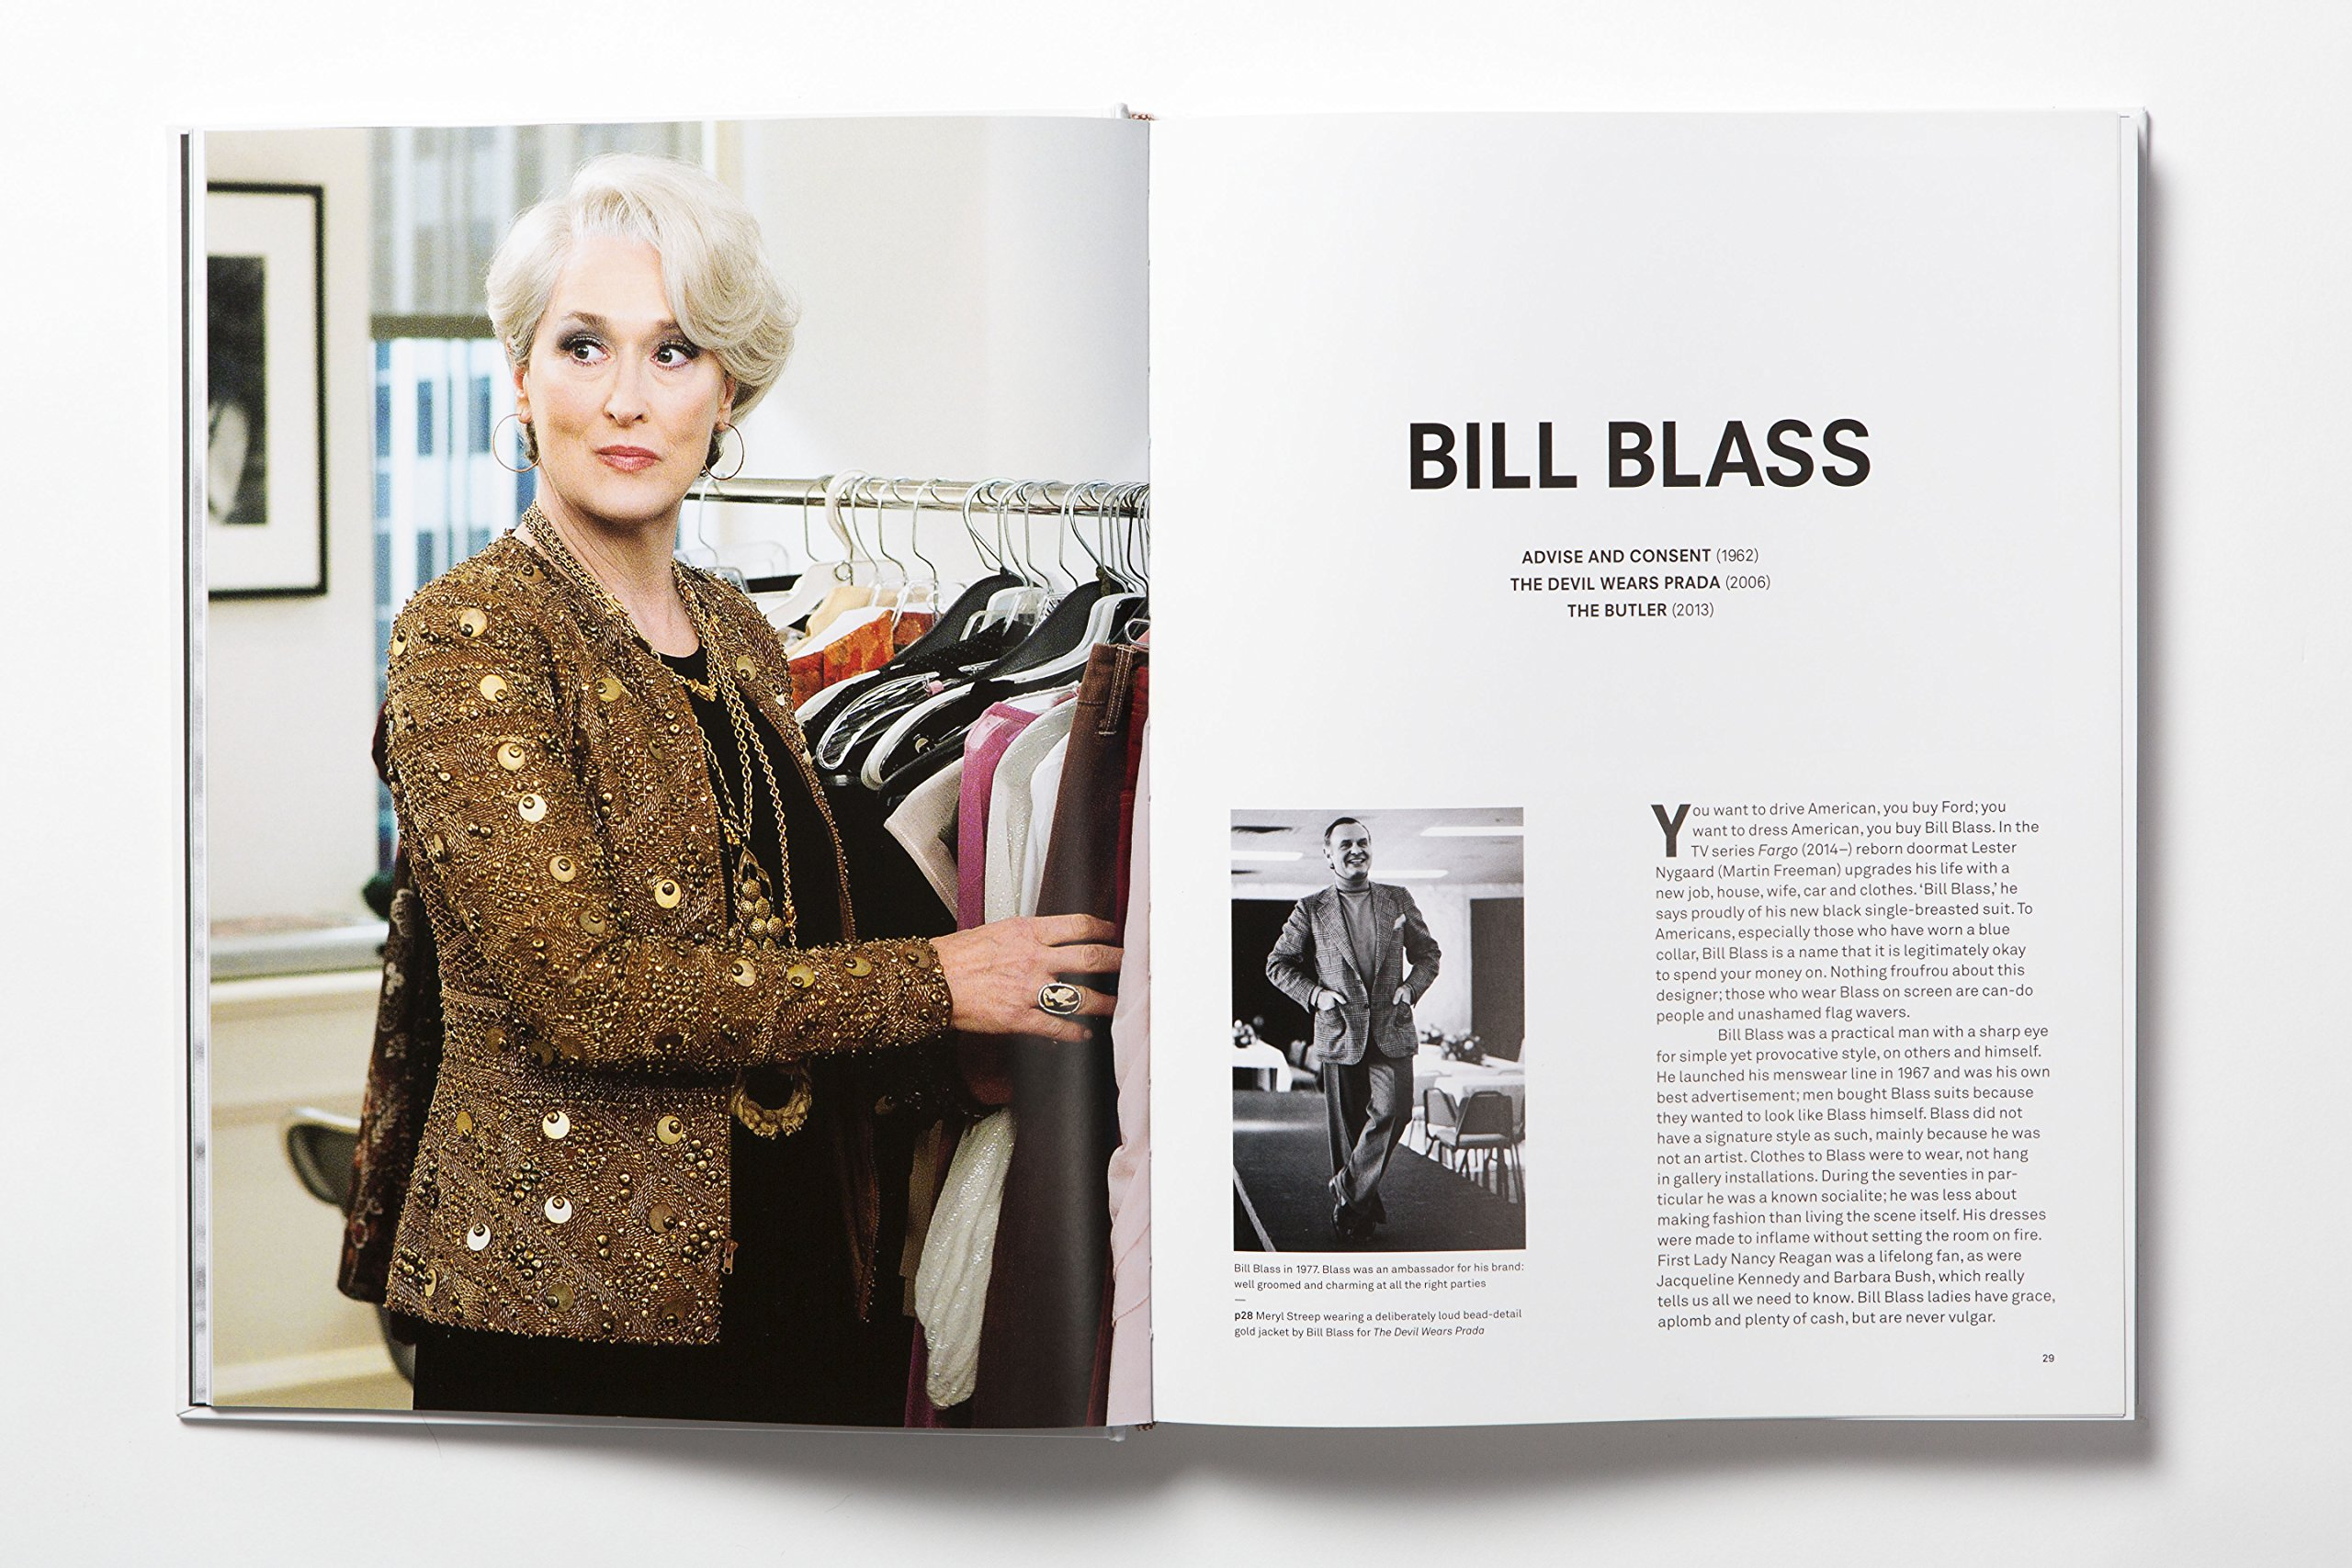 Best book about fashion design #7 Trends That Will Shape Fashion E-Retail in 2018